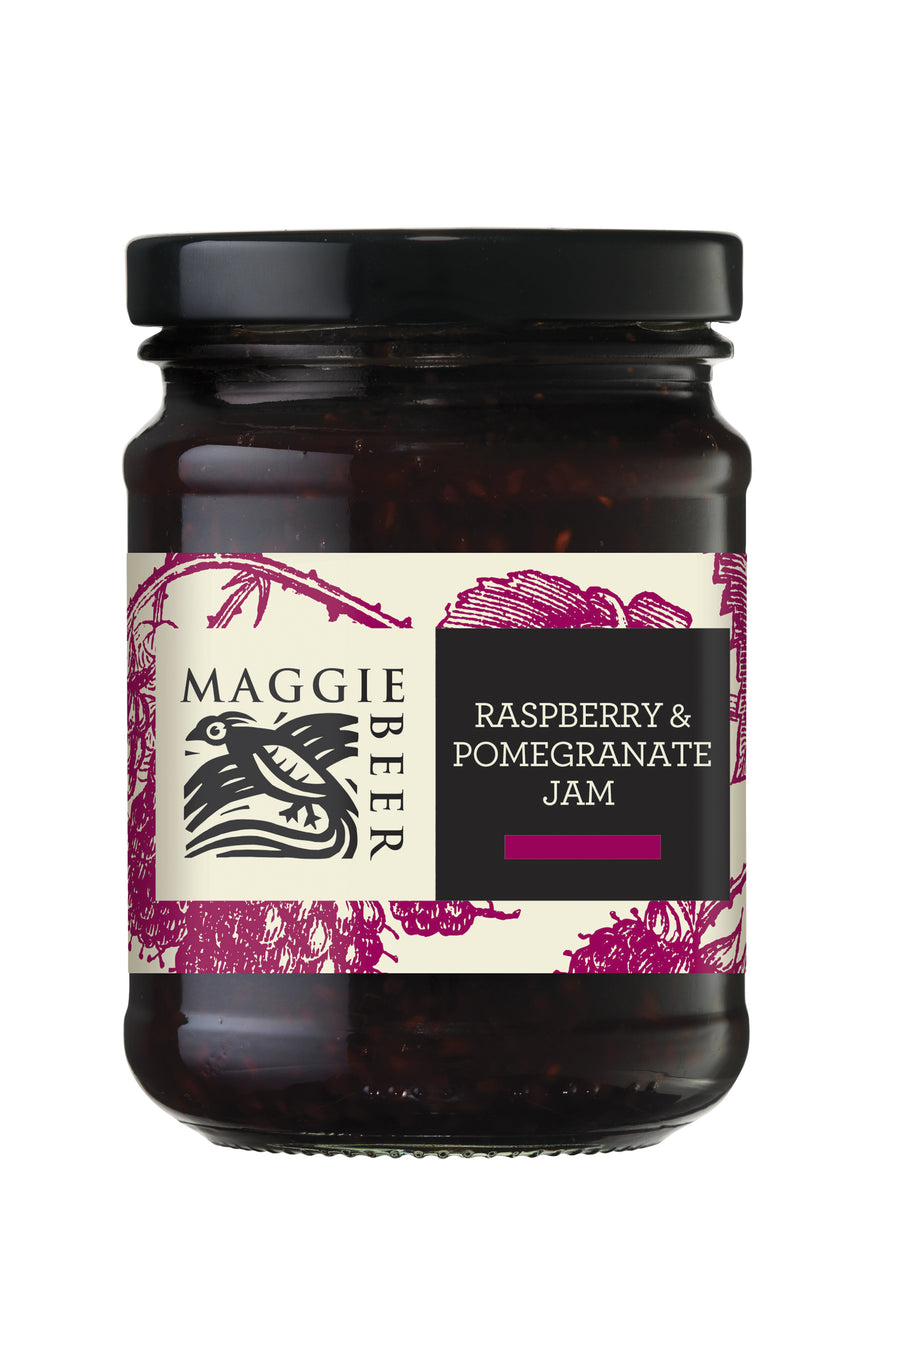 Maggie Beer Raspberry & Pomegranate Jam 6x285g